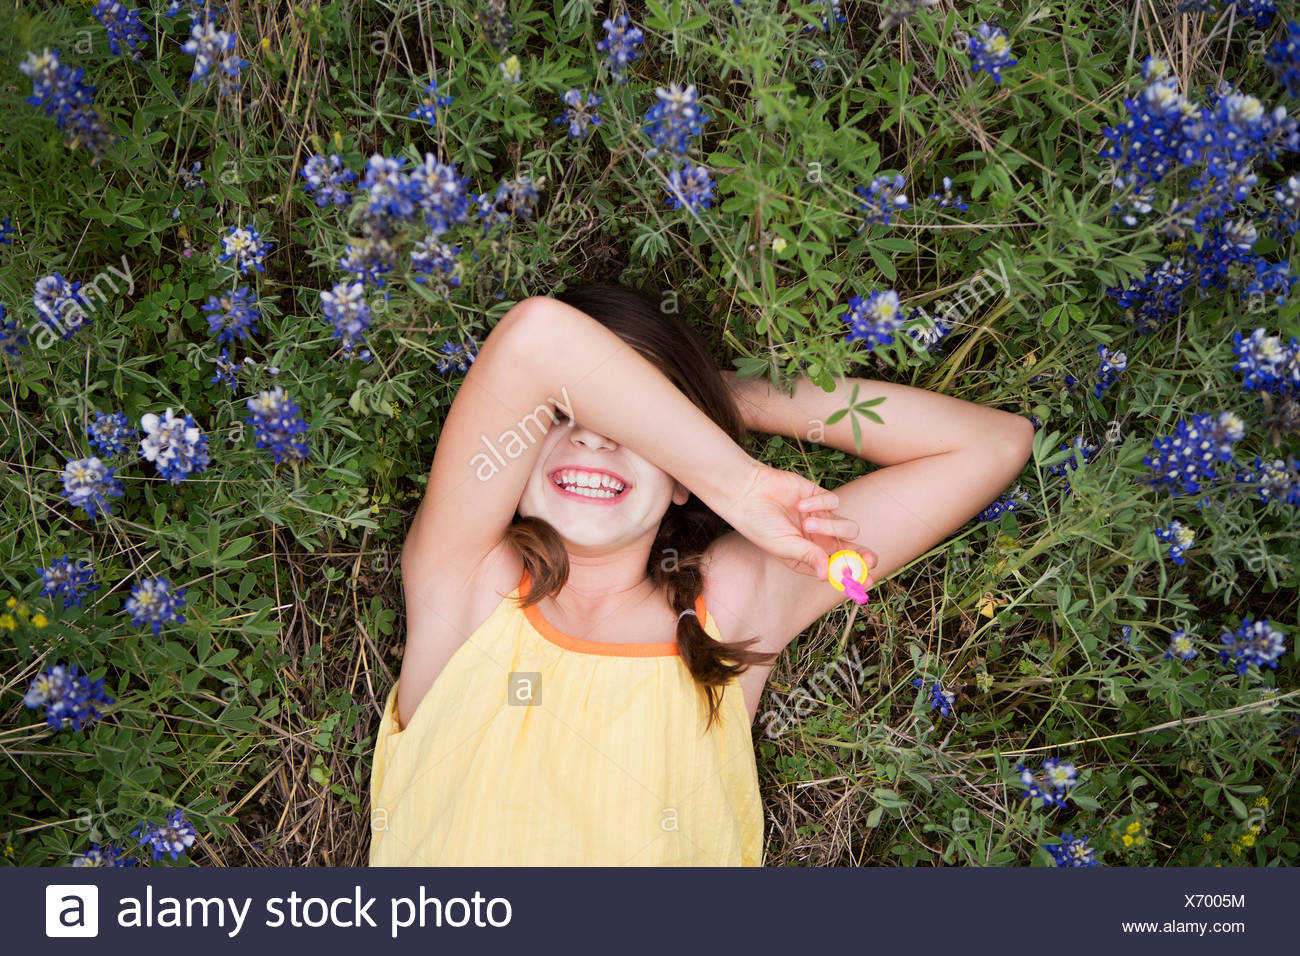 A young girl lying on her back with her arm over her eyes. - Stock Image